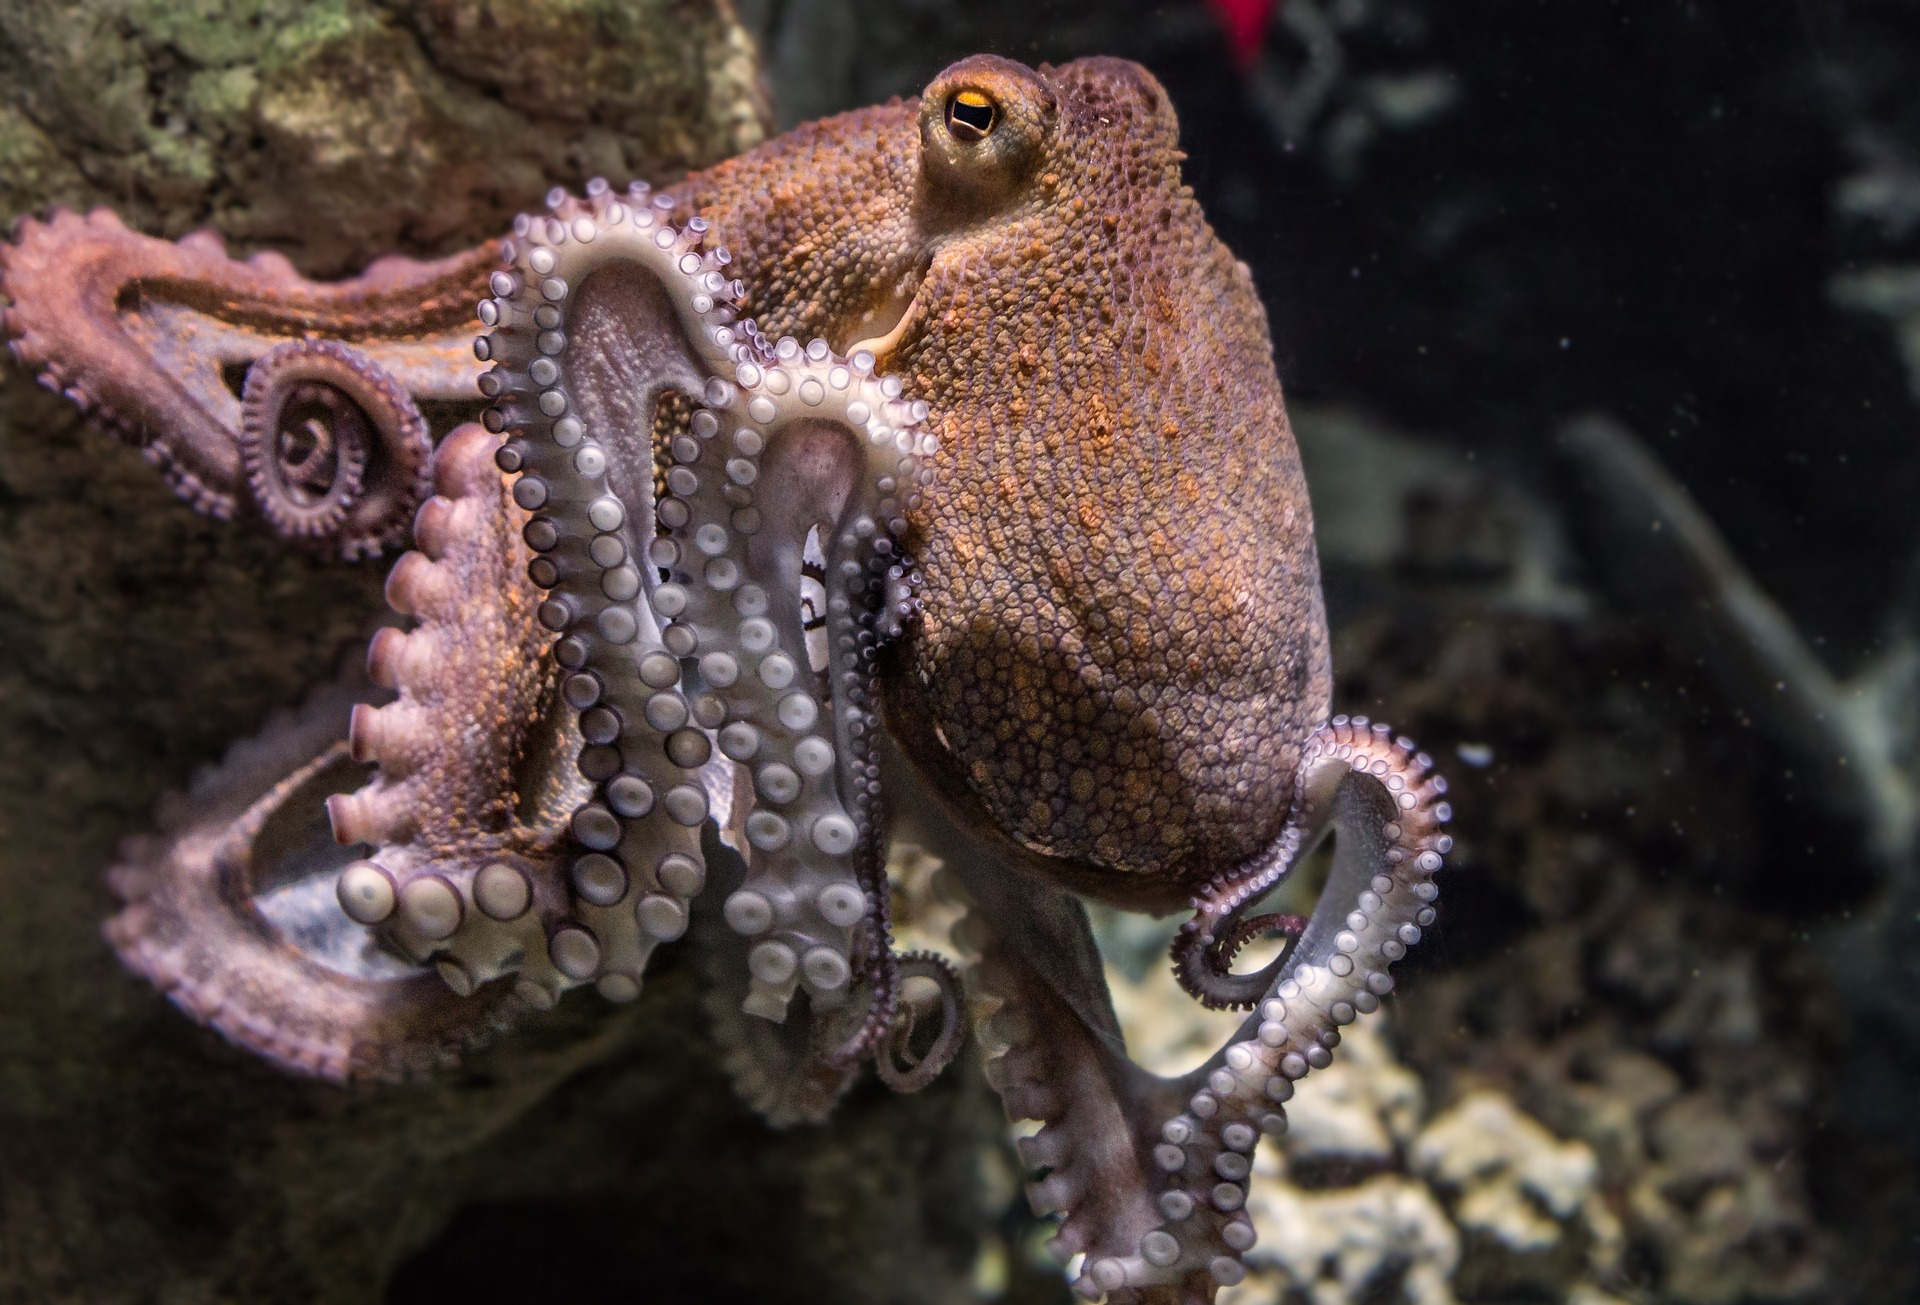 Octopus taken off the menu to make students feel 'comfortable'